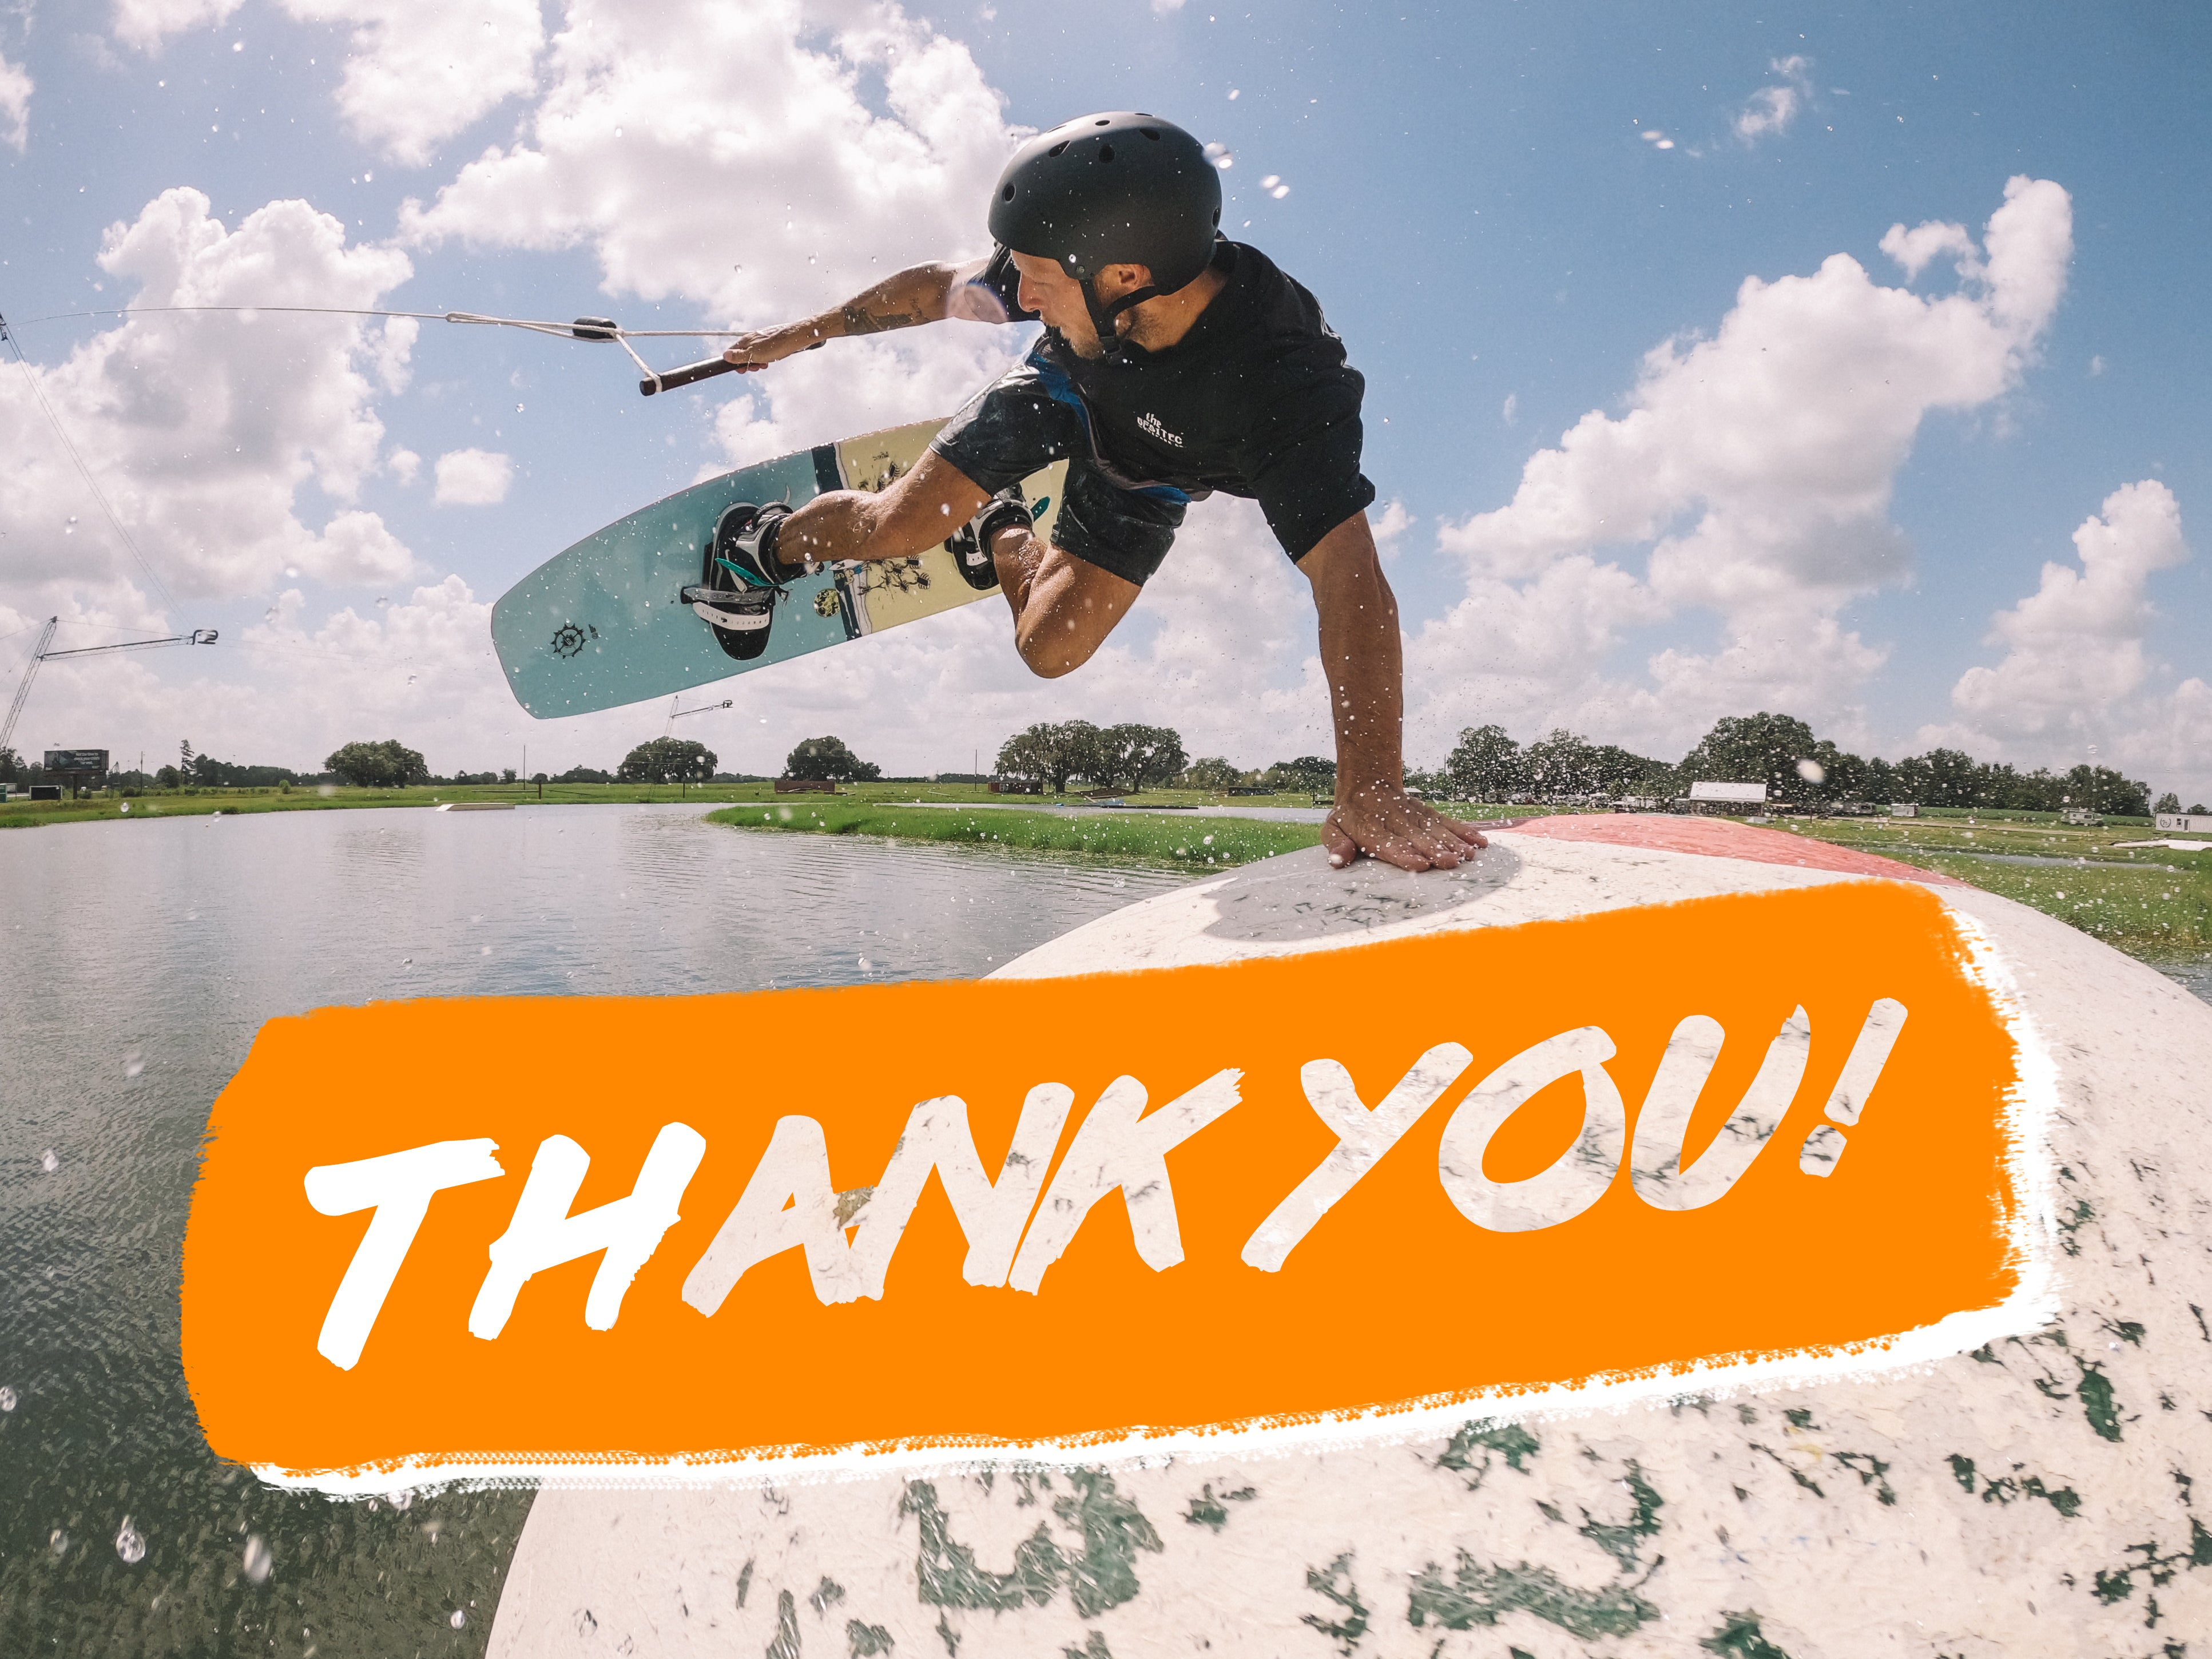 Thank you for purchasing.